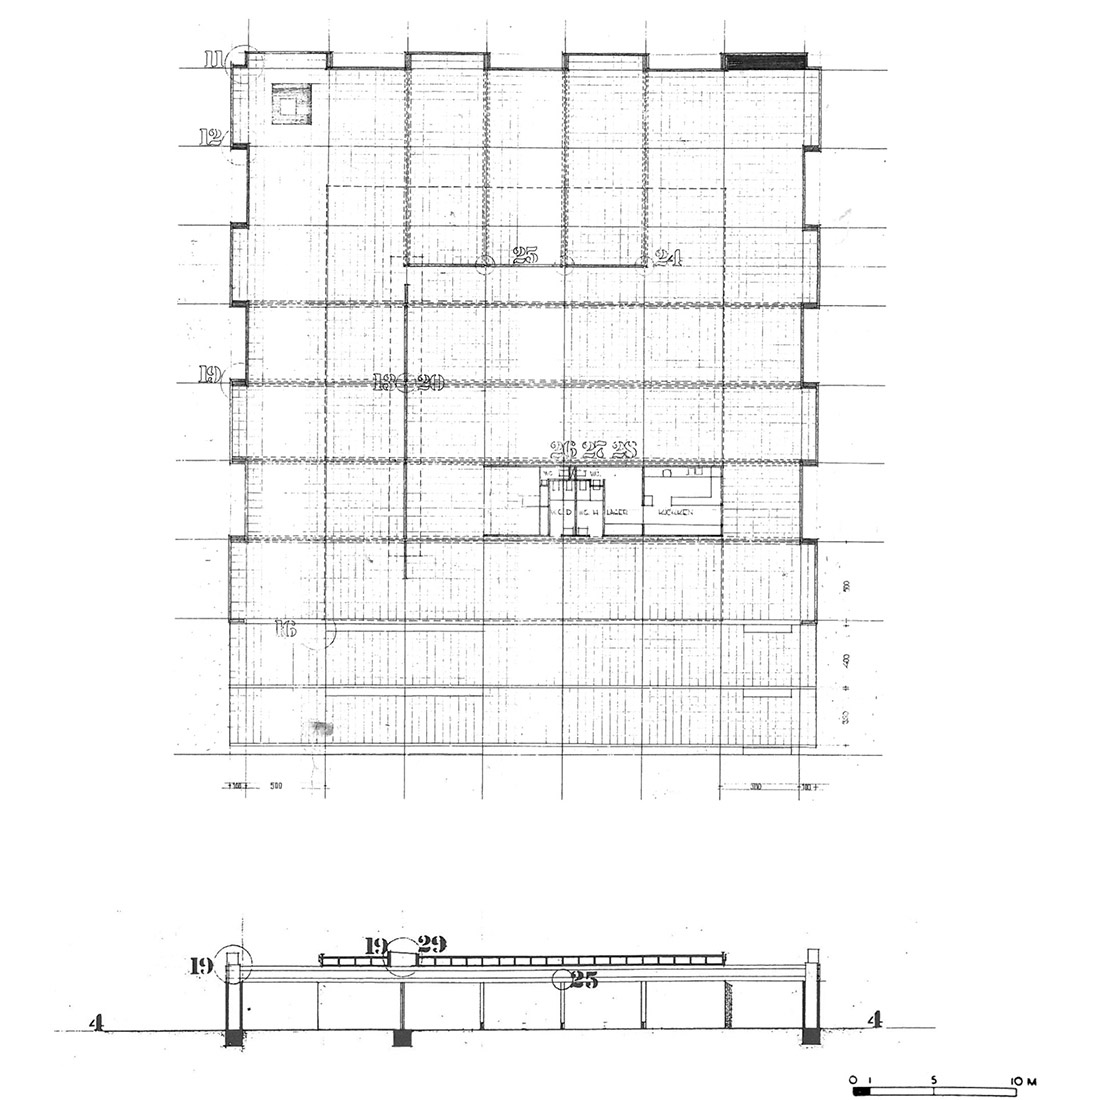 Floor Plan and Section of the pavilion